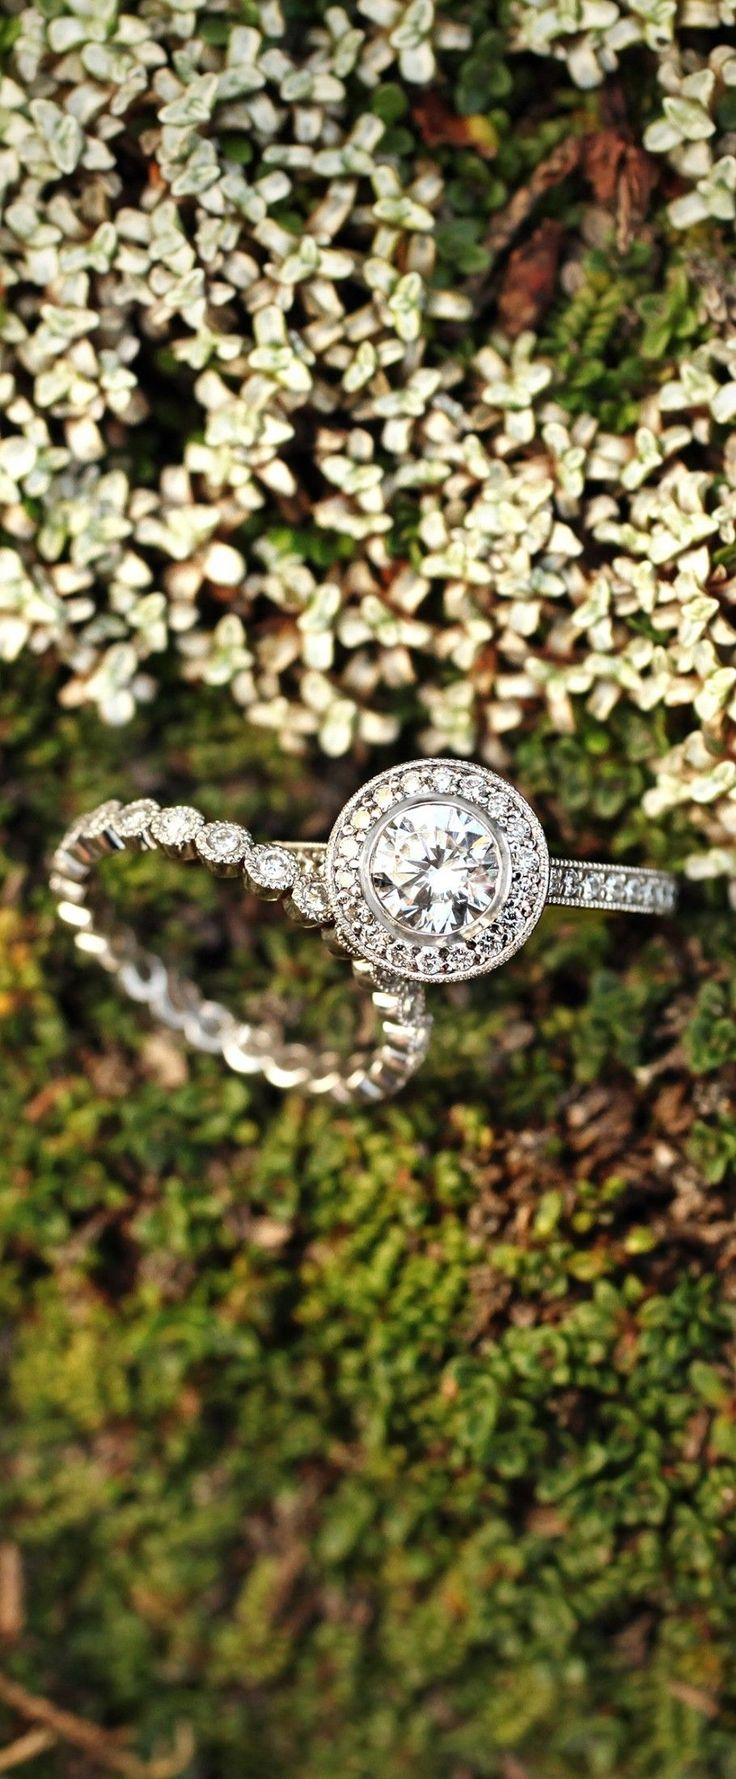 Love the simple elegance of this dazzling diamond engagement ring.